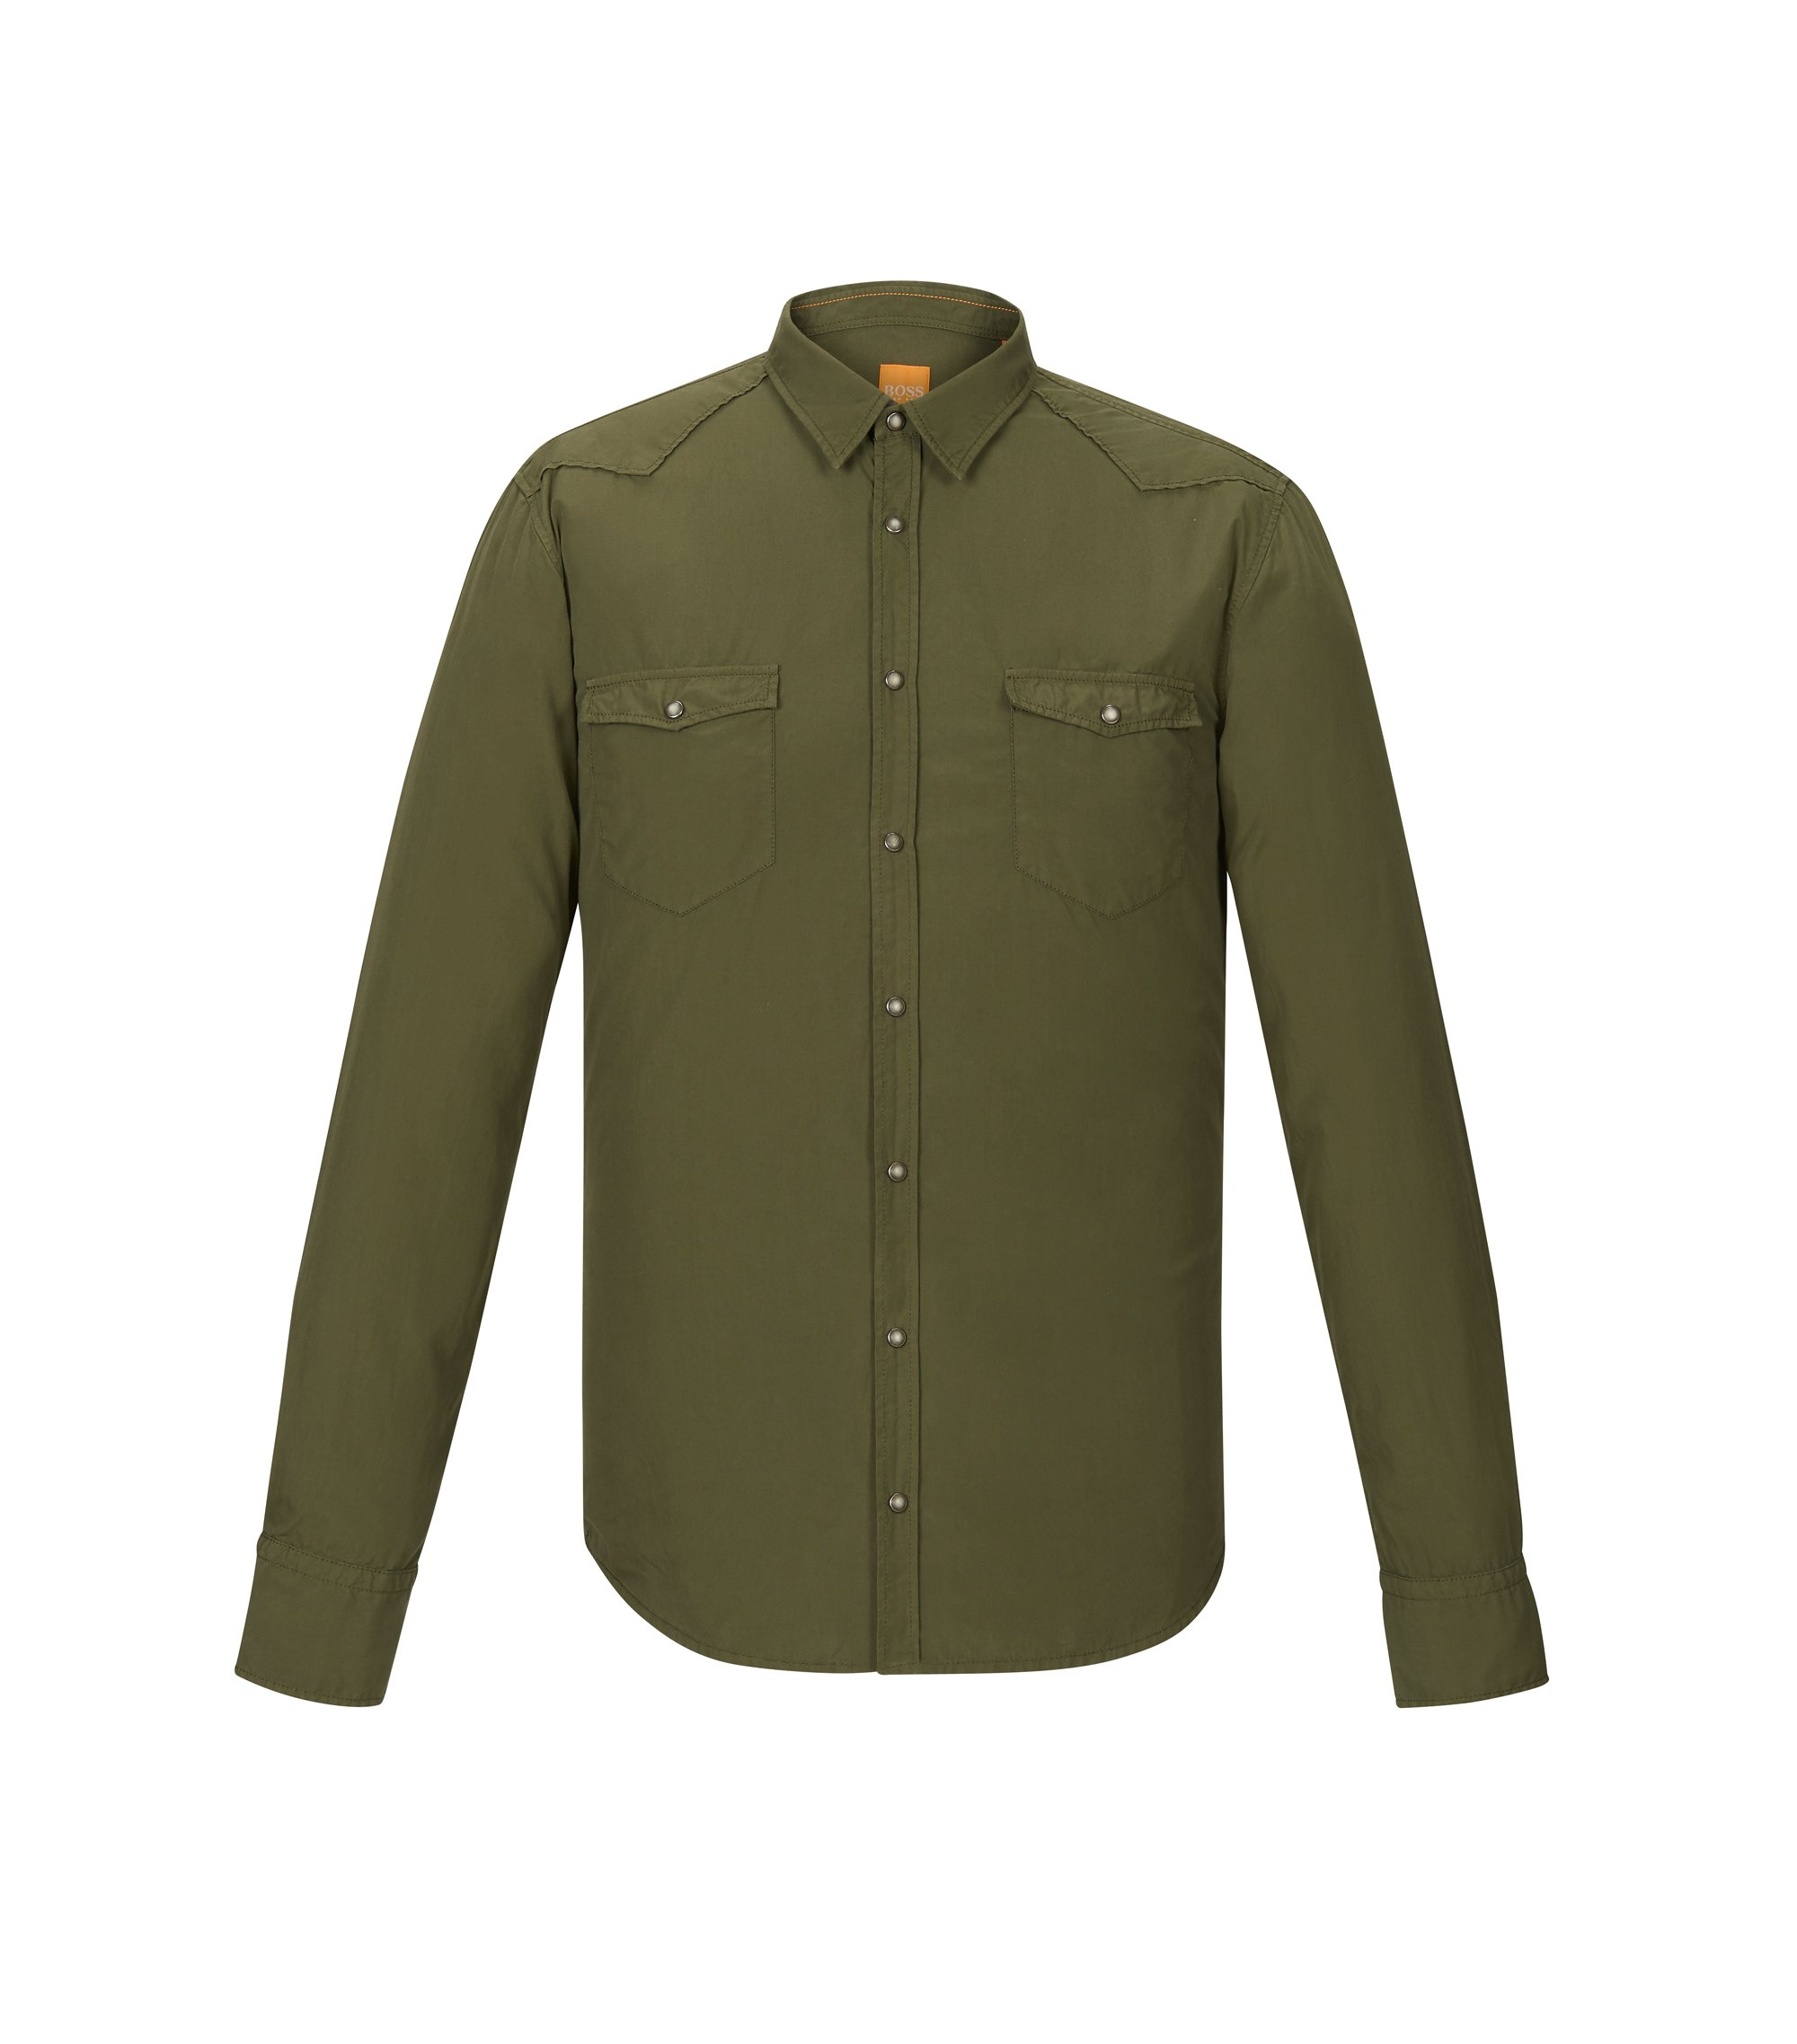 Cotton Poplin Button Down Shirt, Slim Fit | Erodeo , Dark Green